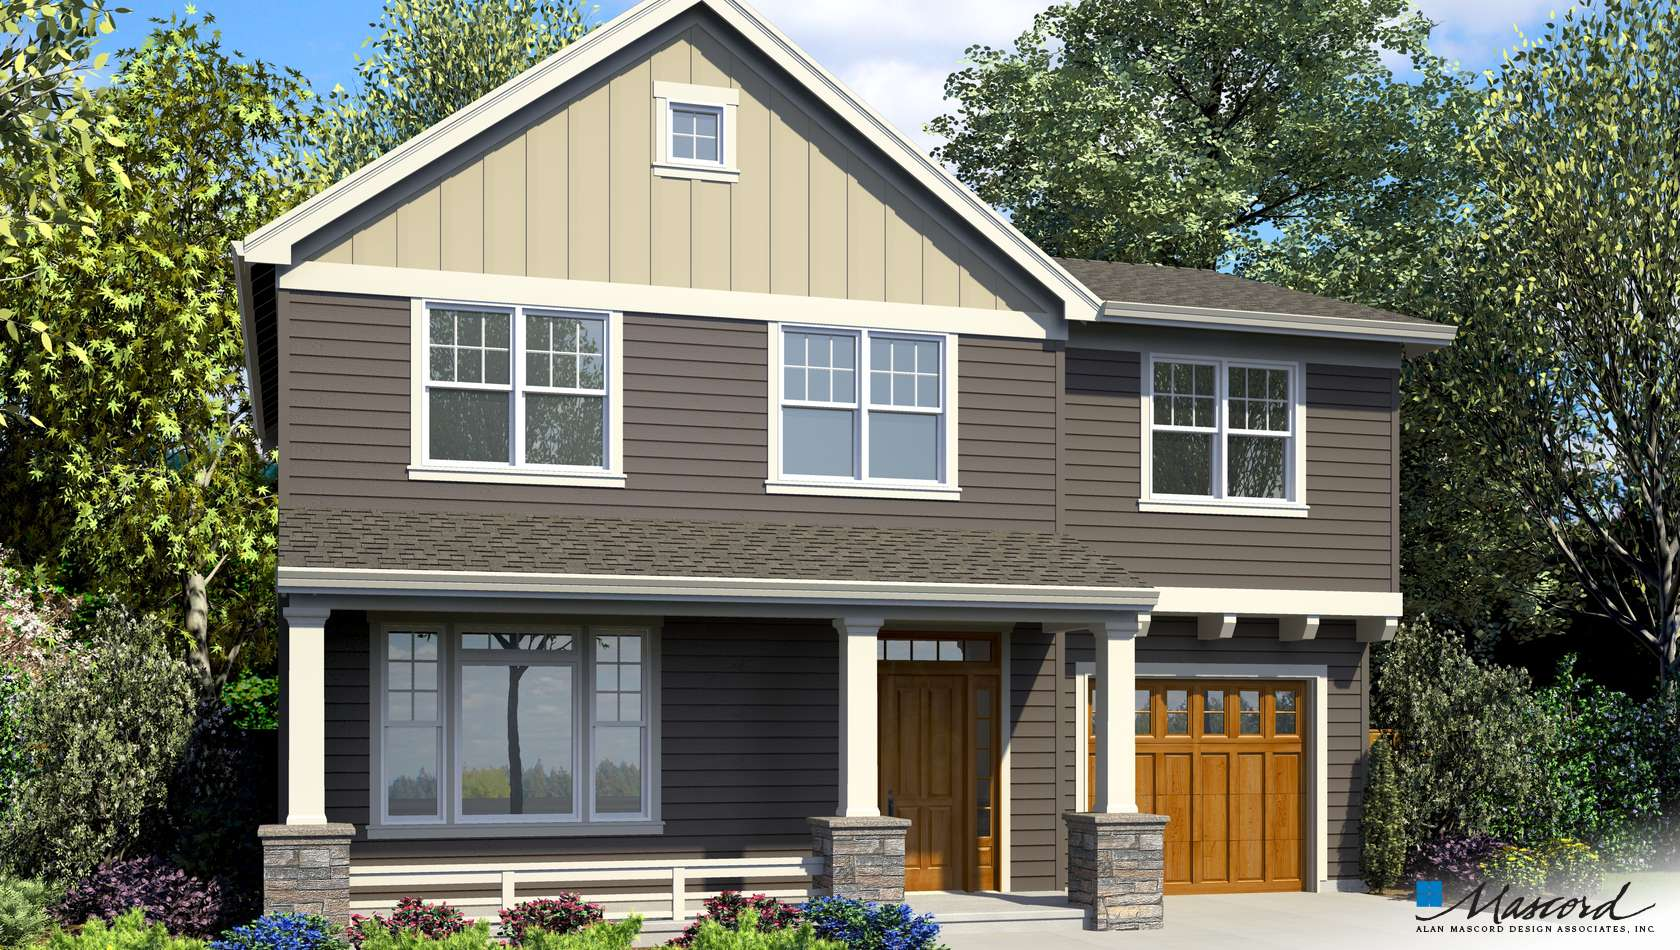 Main image for house plan 21143B: The Alexandria